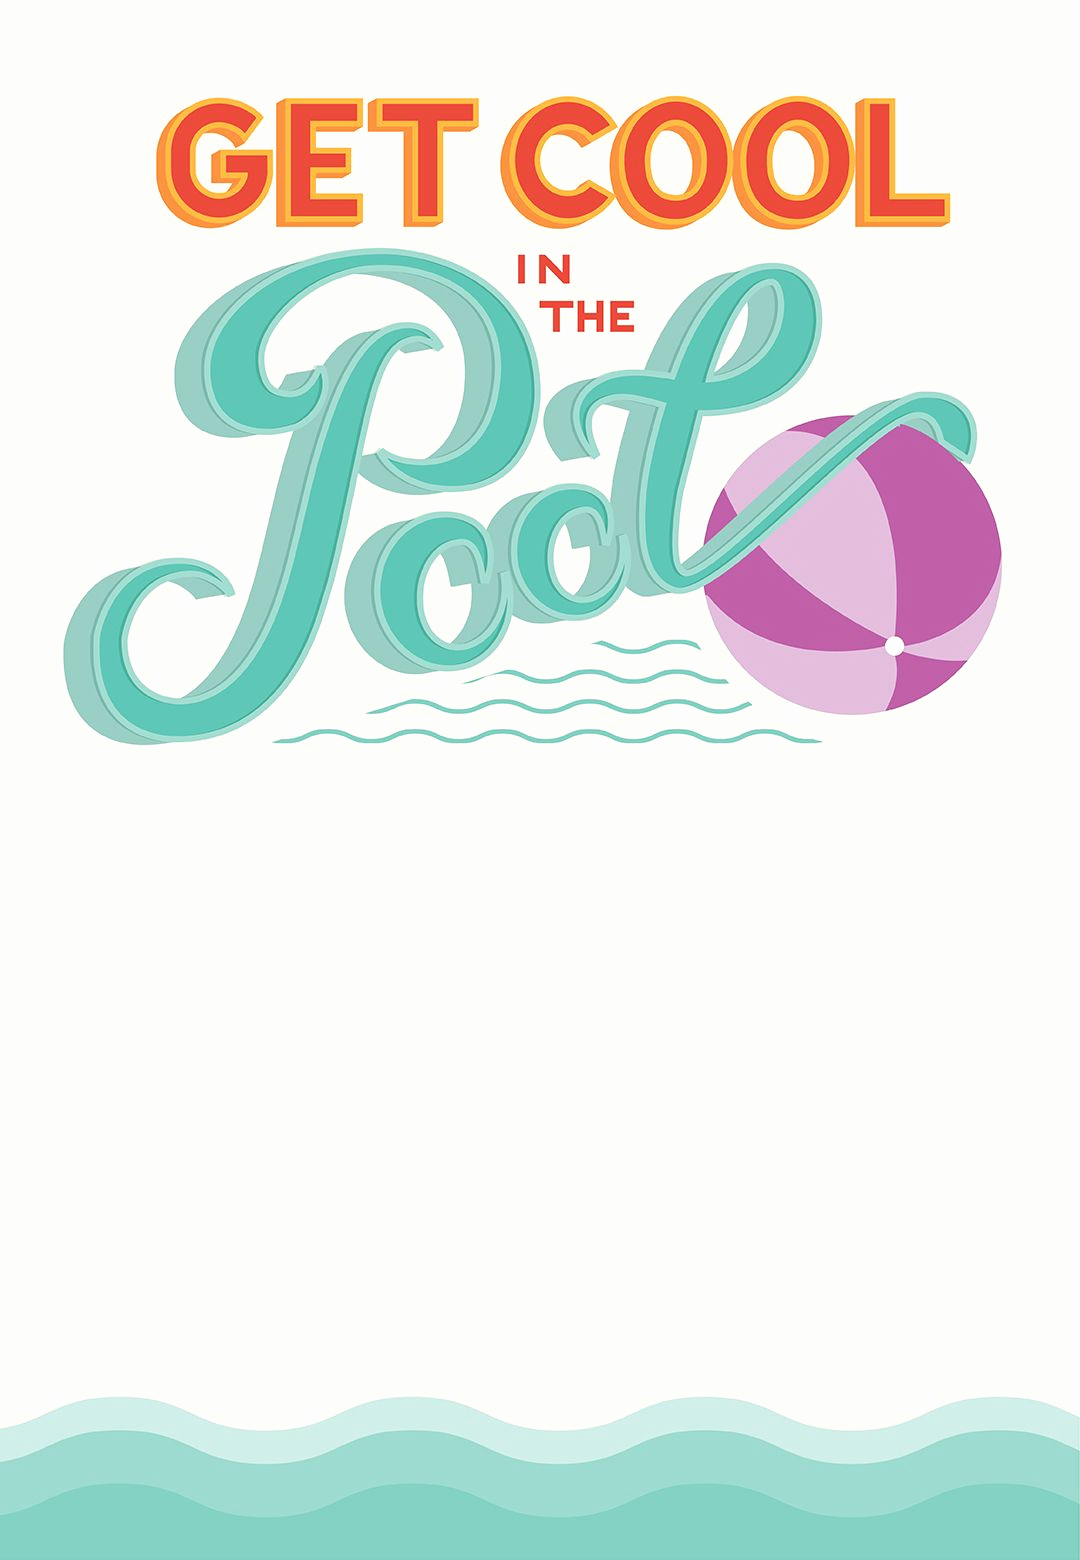 Birthday Pool Party Invitation Wording Awesome Pool Party Free Printable Party Invitation Template